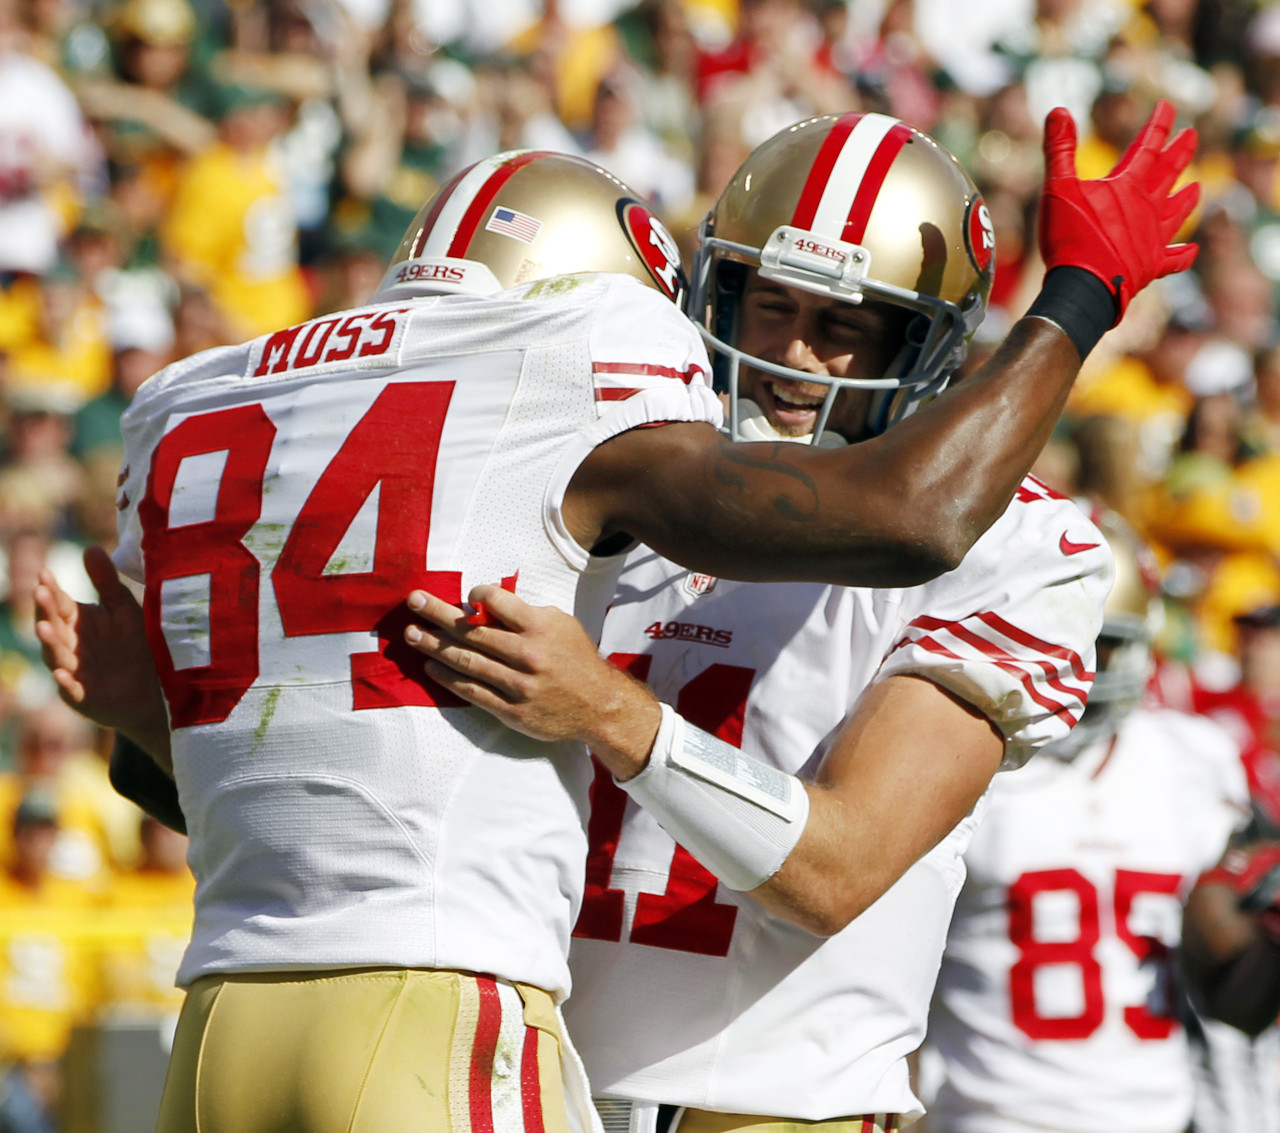 The San Francisco 49ers' Randy Moss is congratulated by quarterback Alex Smith after Moss caught a touchdown pass. (AP Photo/Mike Roemer)